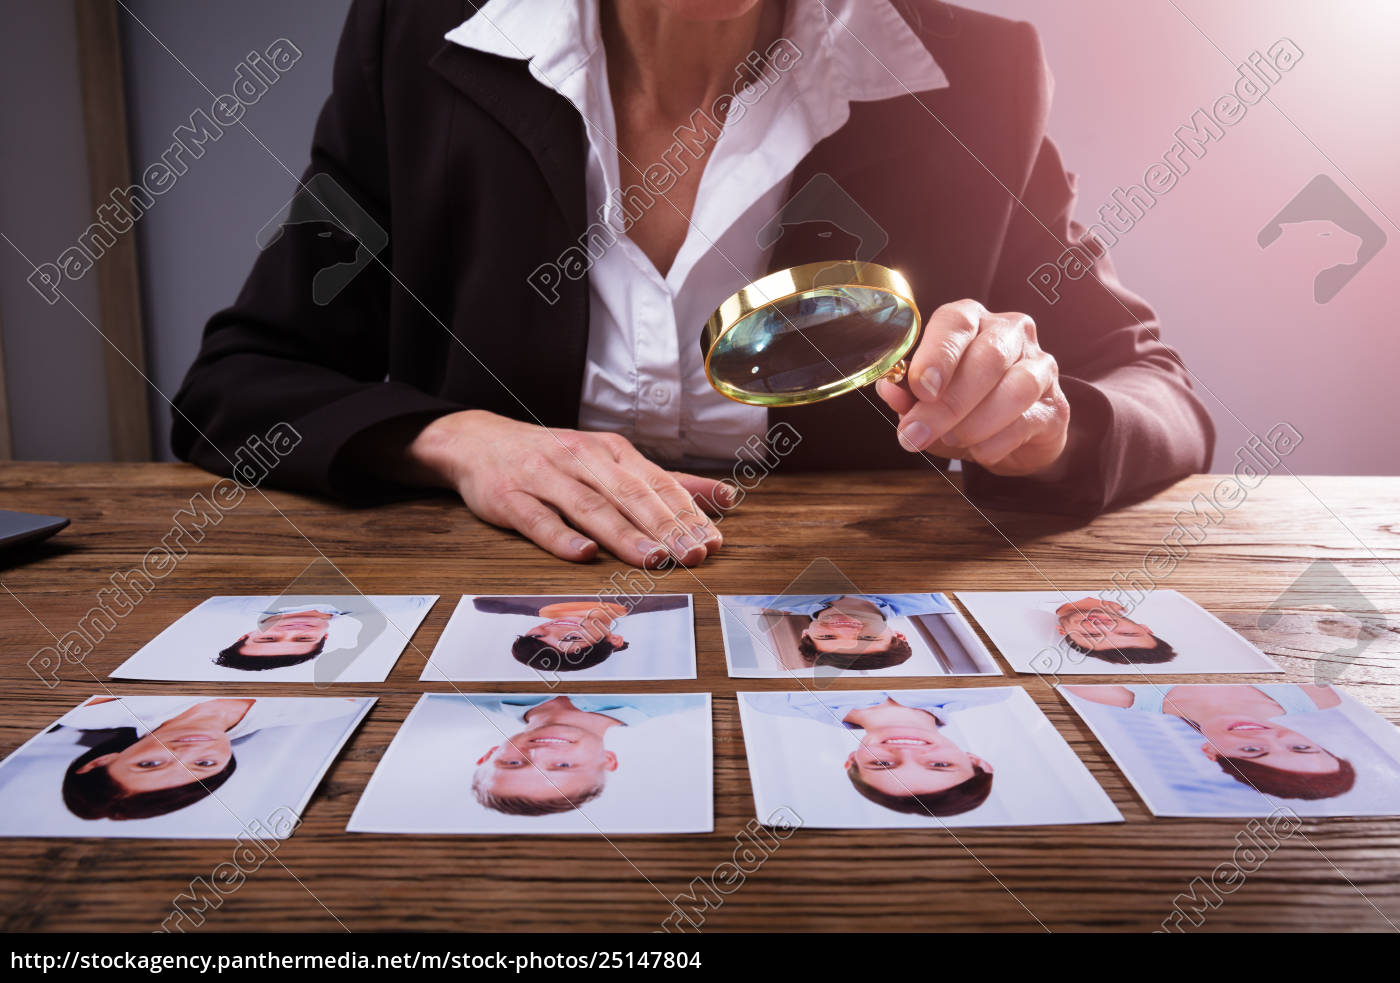 businessperson, looking, at, candidate's, photograph - 25147804